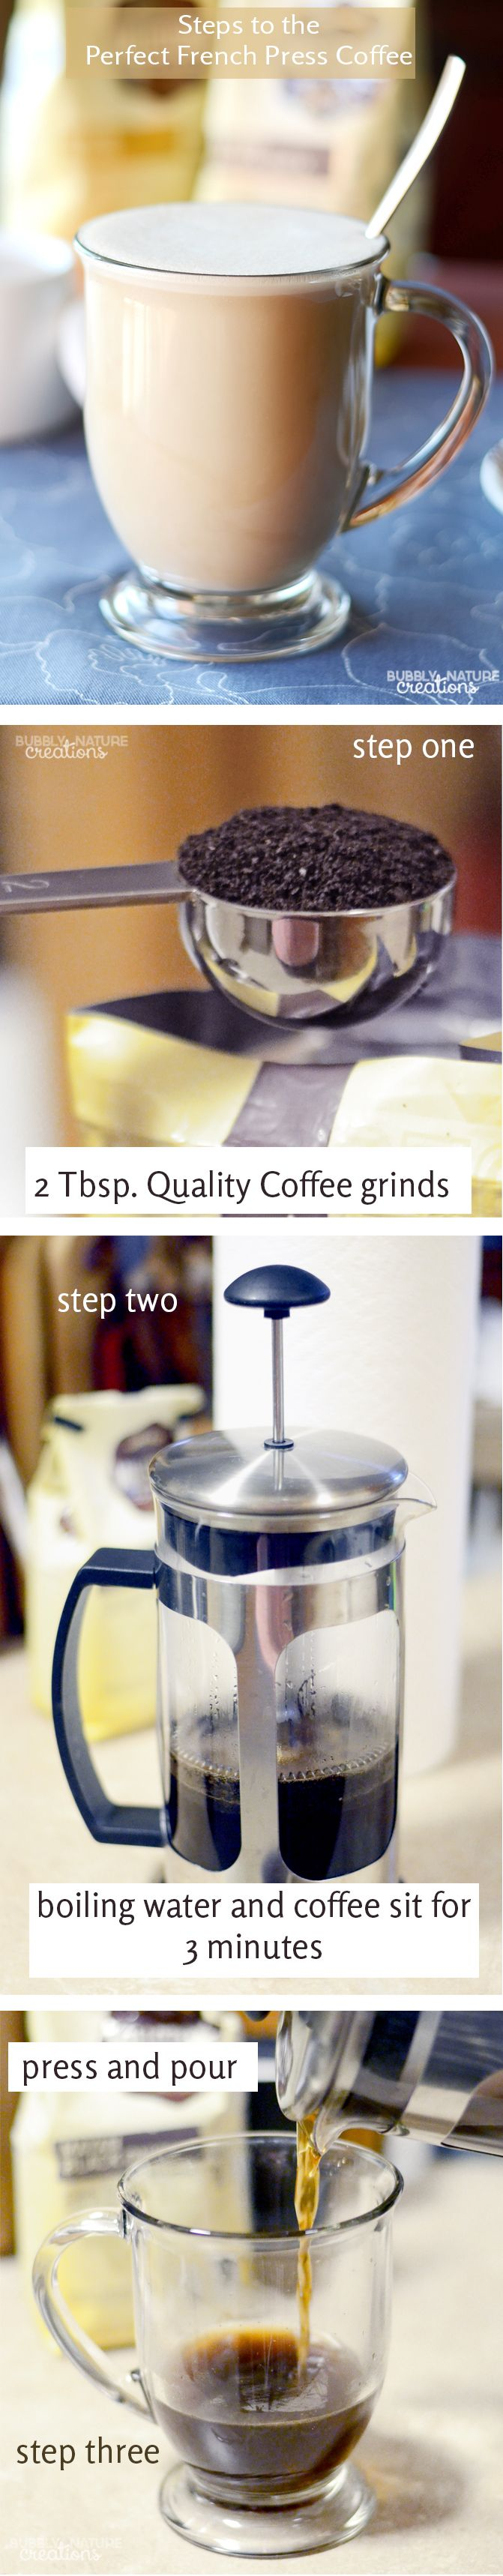 Steps to the Perfect French Press Coffee! 3 easy steps will make you a French Press Pro! #MillstoneCoffee #ad